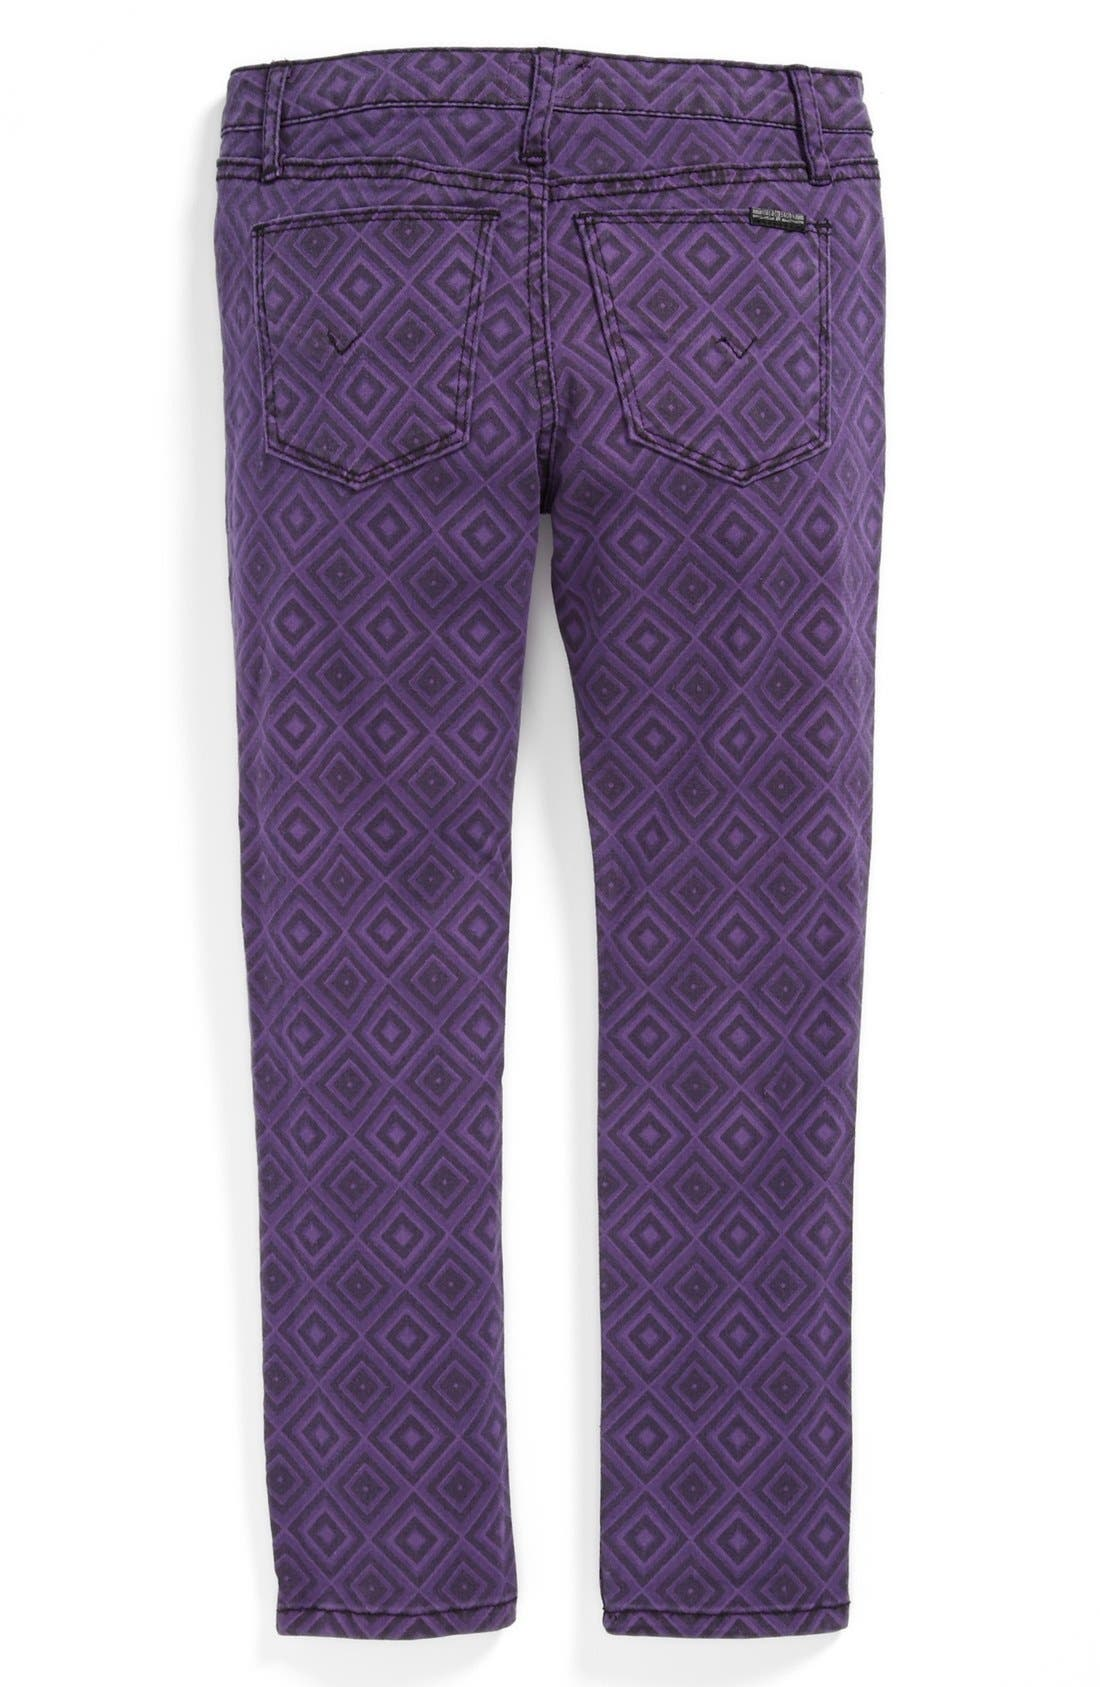 Alternate Image 1 Selected - Hudson Kids 'Dolly' Skinny Jeans (Little Girls)